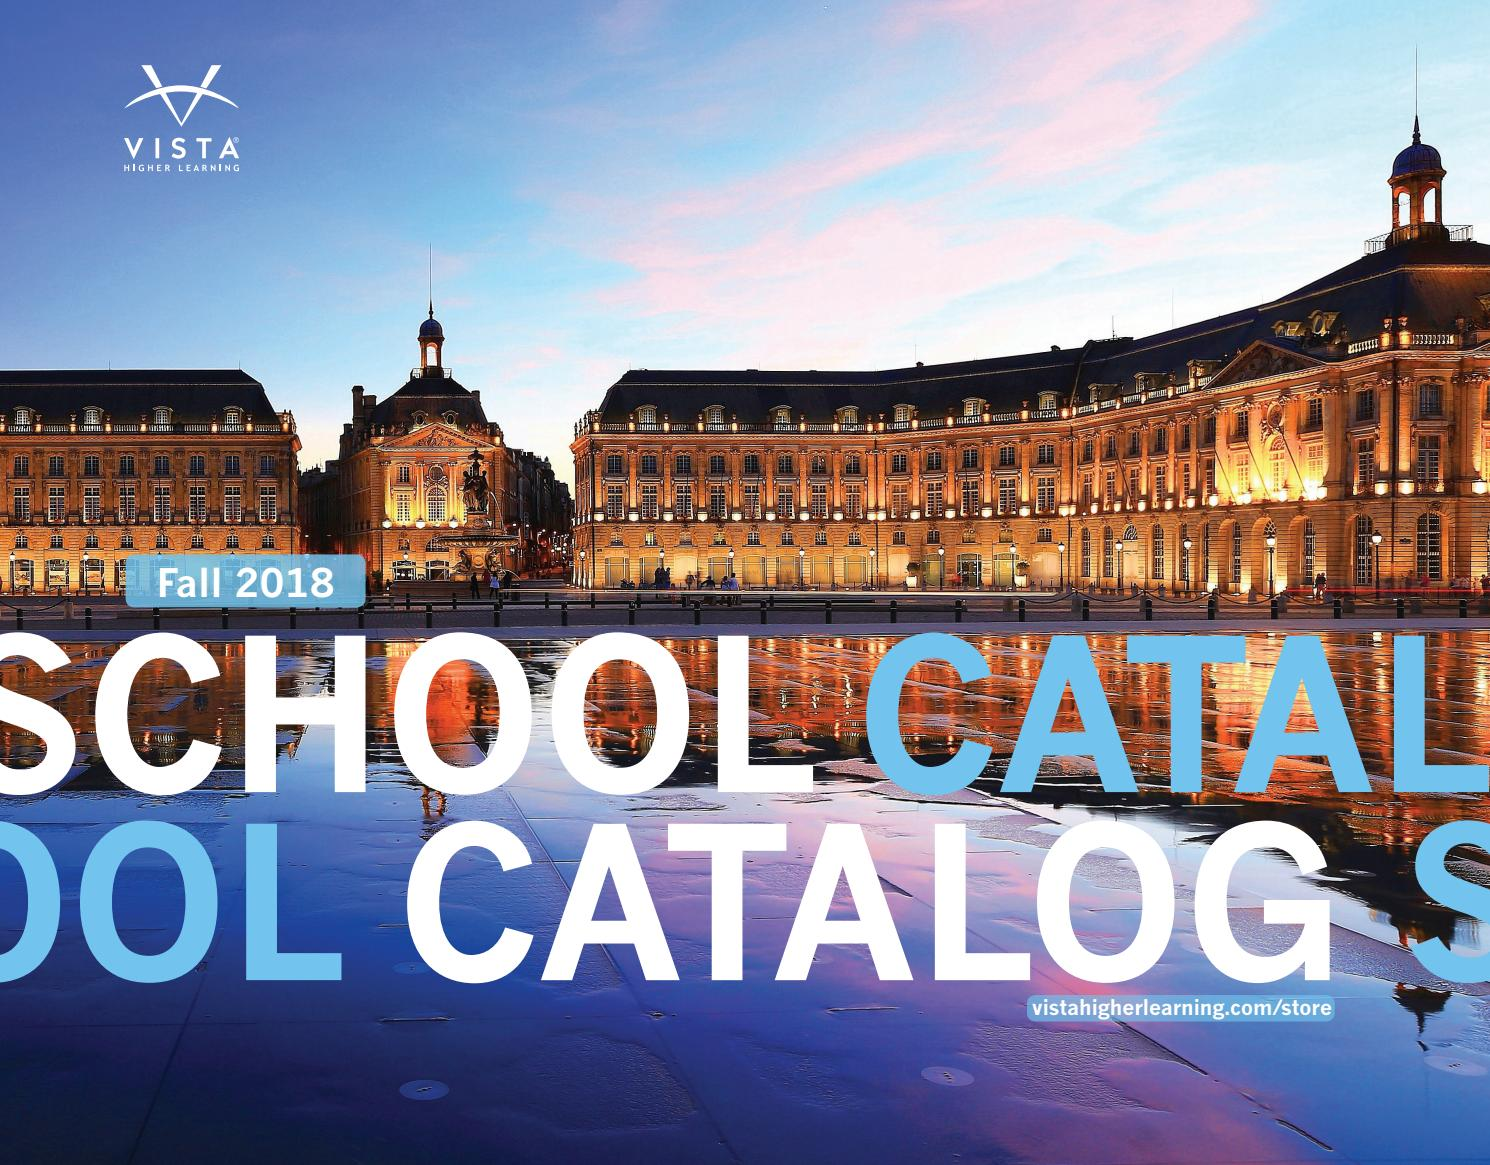 2018 school catalog public1 by vista higher learning issuu fandeluxe Images